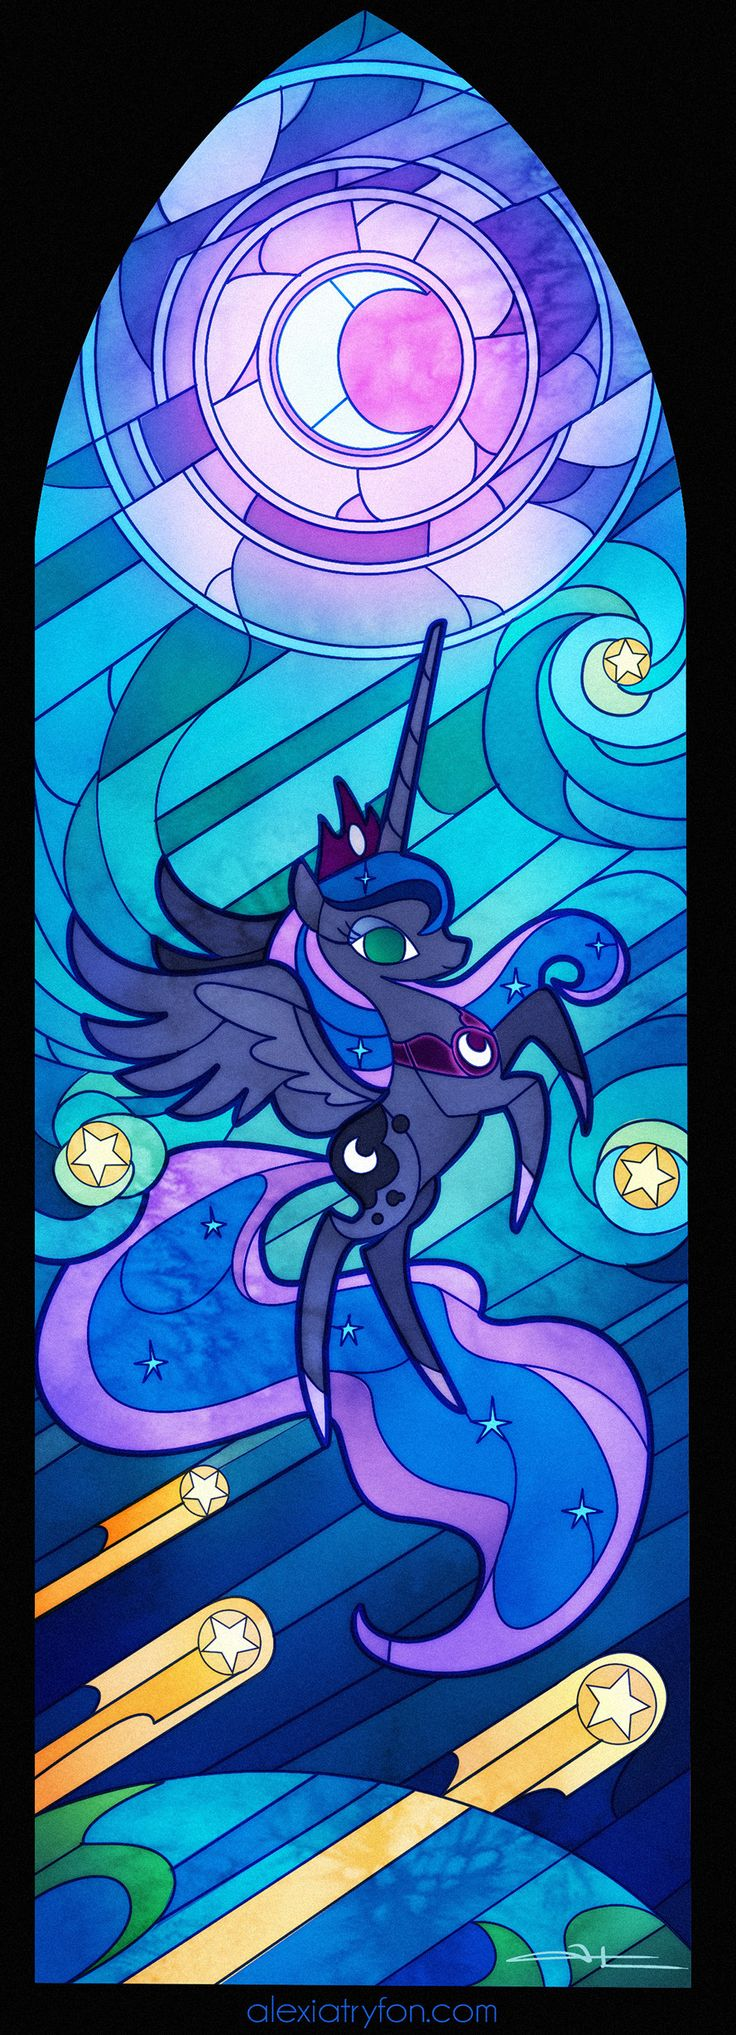 Best 25 ariel wallpaper ideas on pinterest little - Princess luna screensaver ...